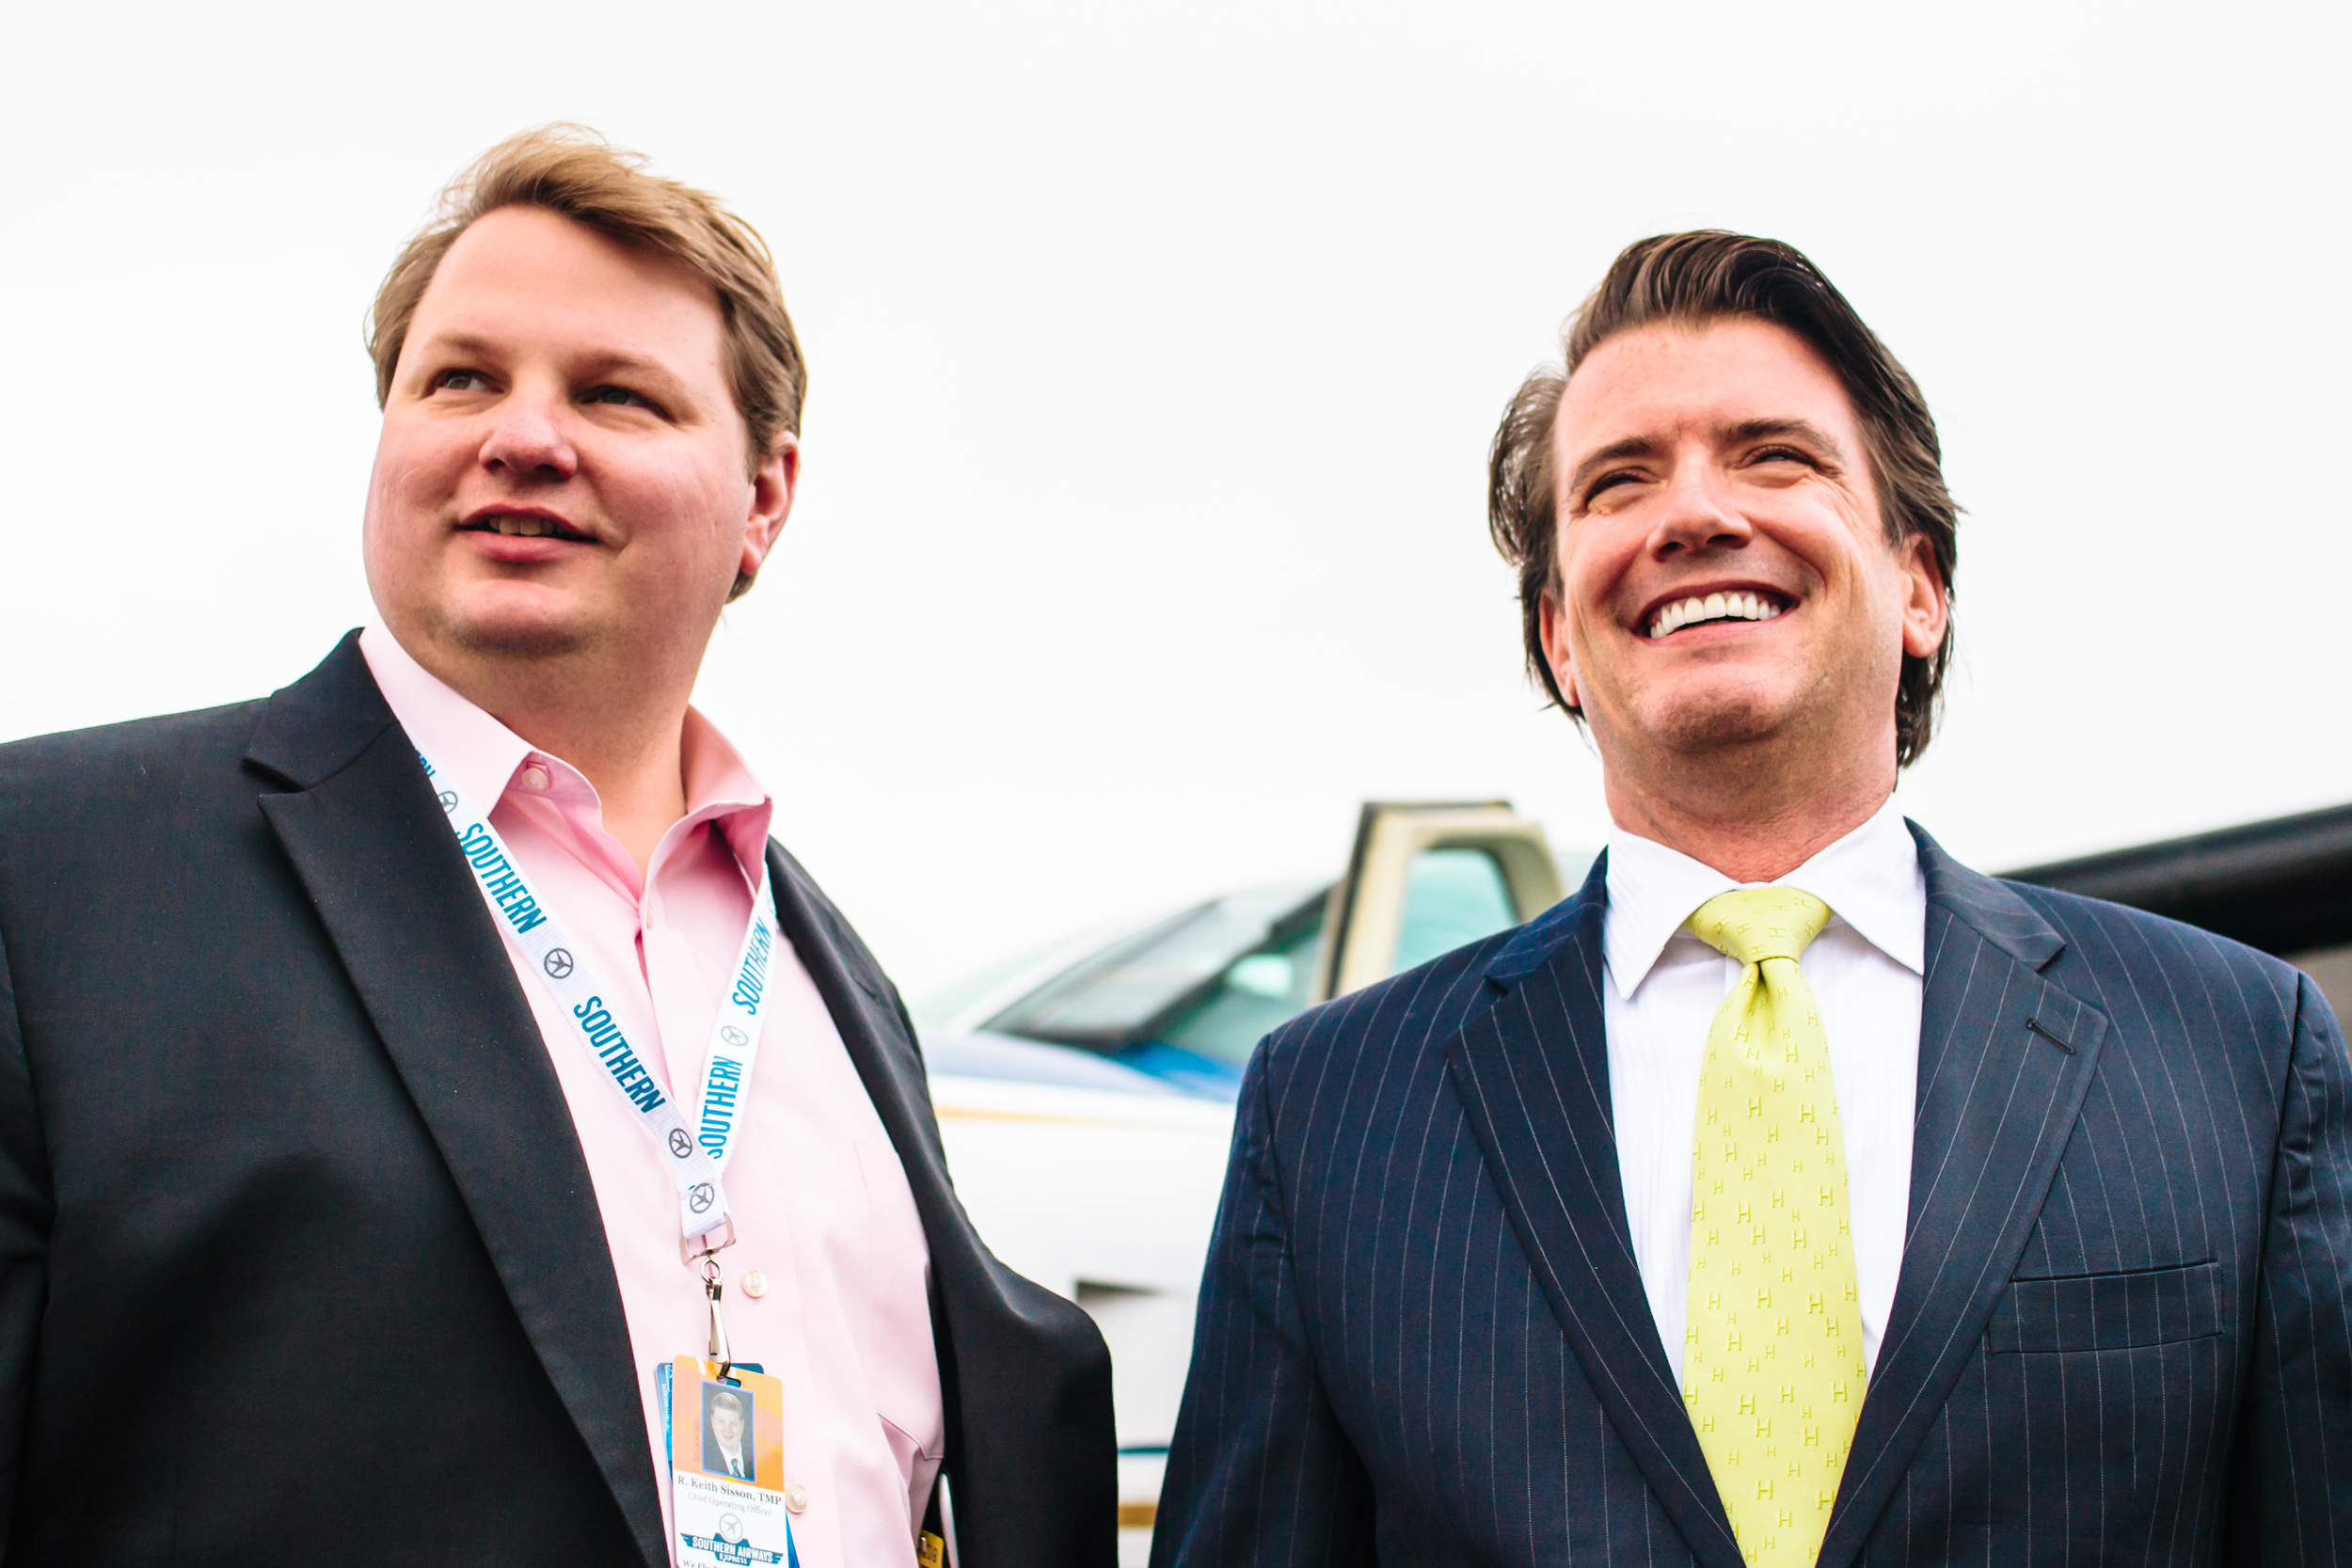 KEITH SISSON,COO, SOUTHERN AIRWAYS EXPRESS, AND STAN LITTLE, FOUNDER & CEO